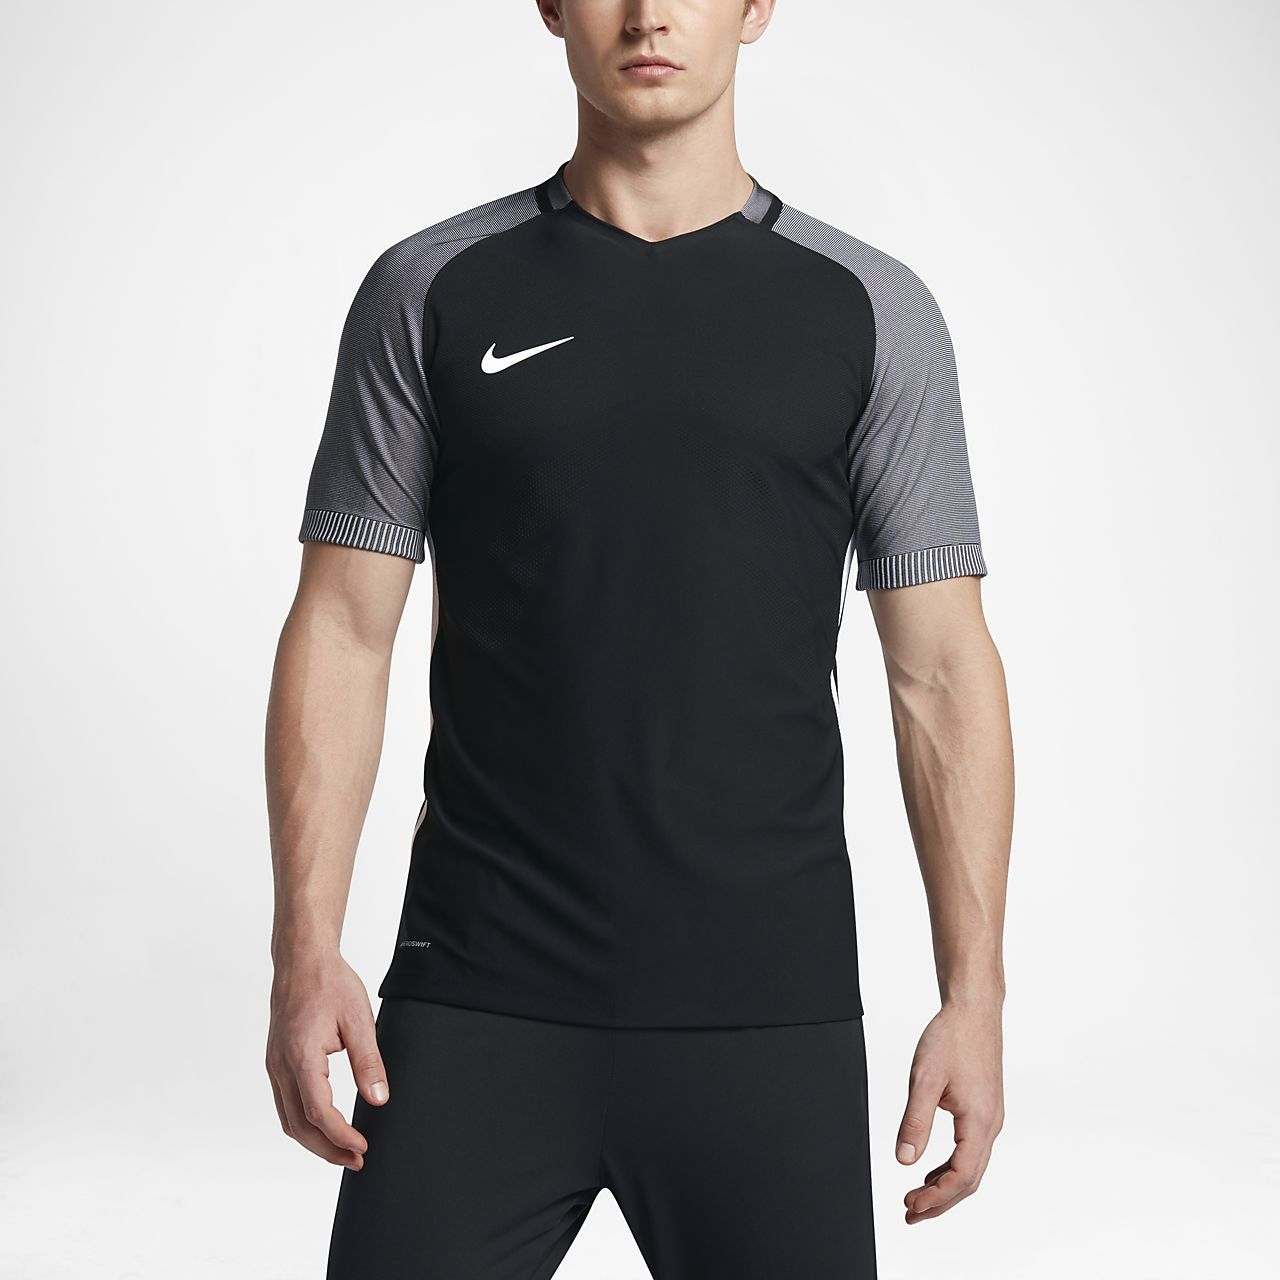 Nike Strike AeroSwift Men's Short Sleeve Soccer Top